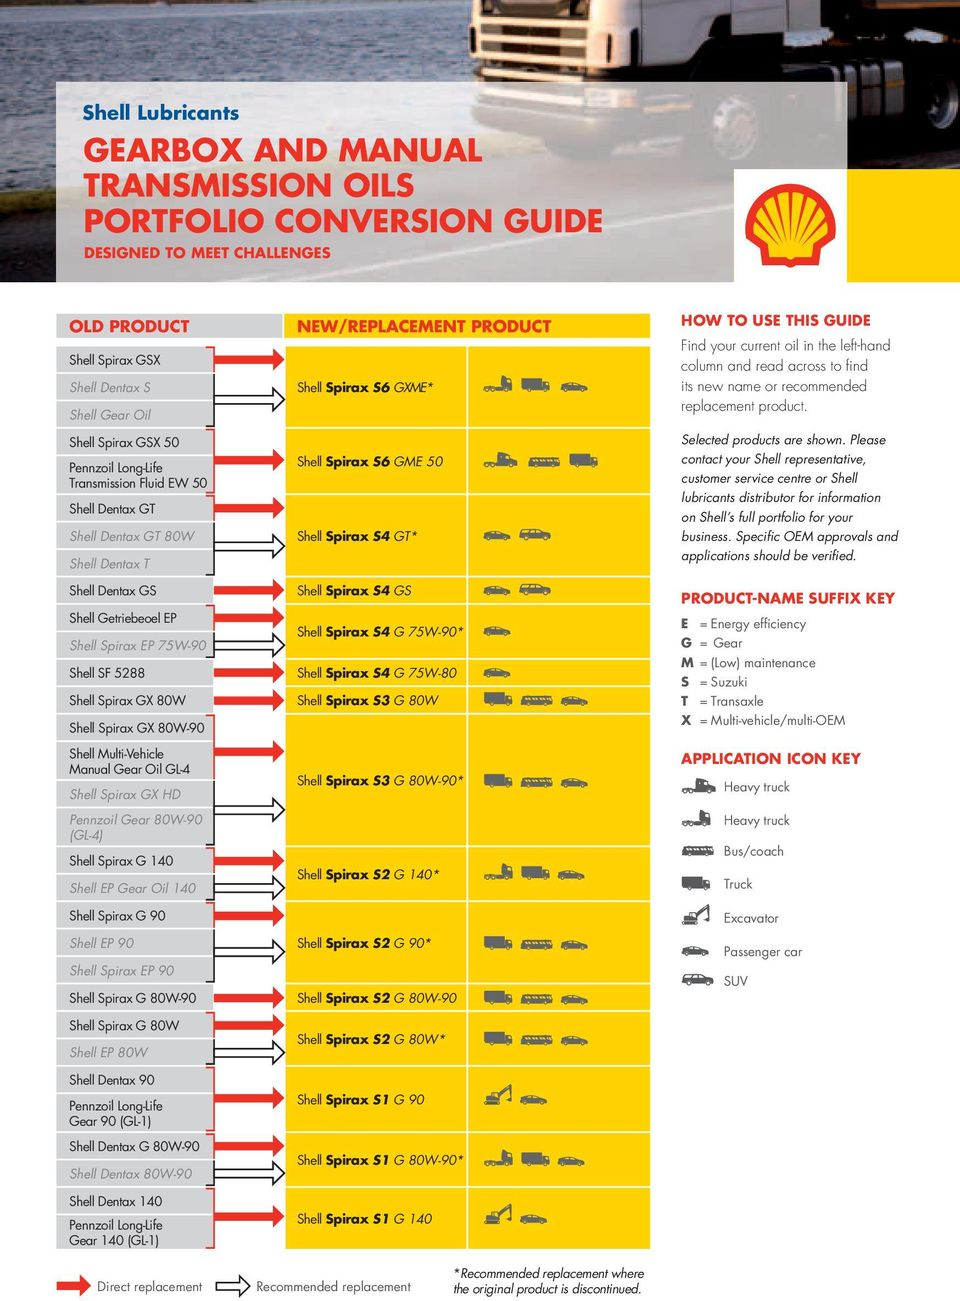 FROM   TO    PORTFOLIO CONVERSION GUIDE DESIGNED TO MEET CHALLENGES